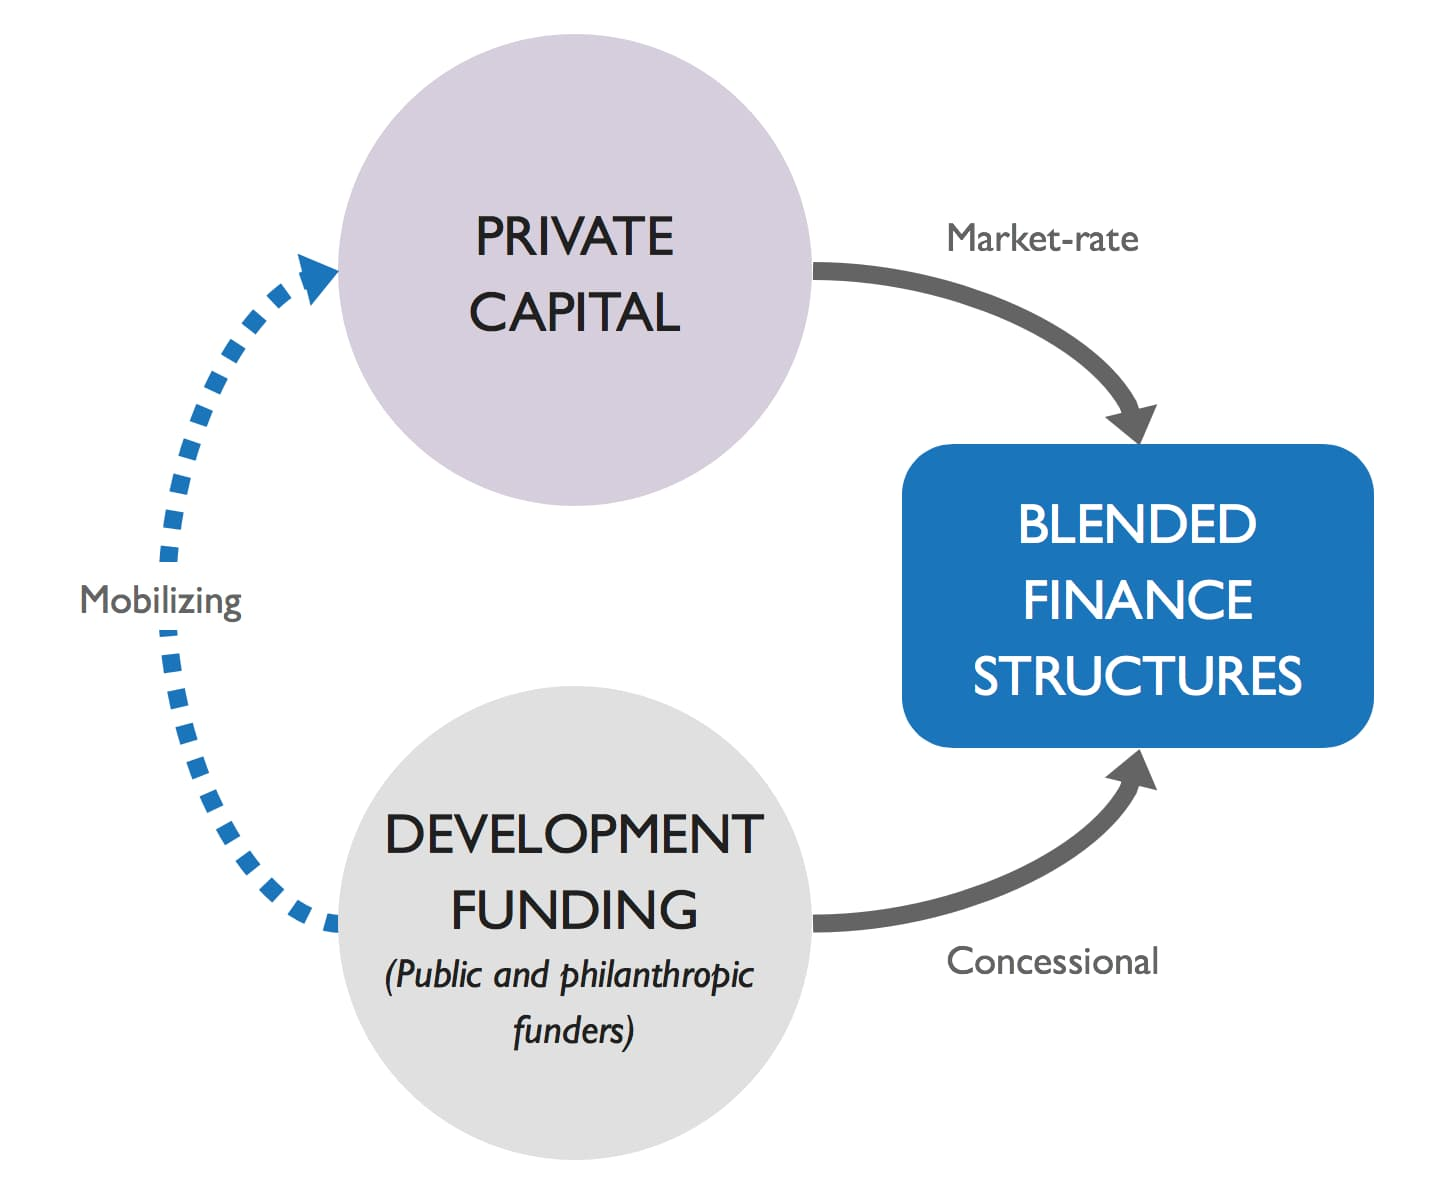 blended-finance-definition